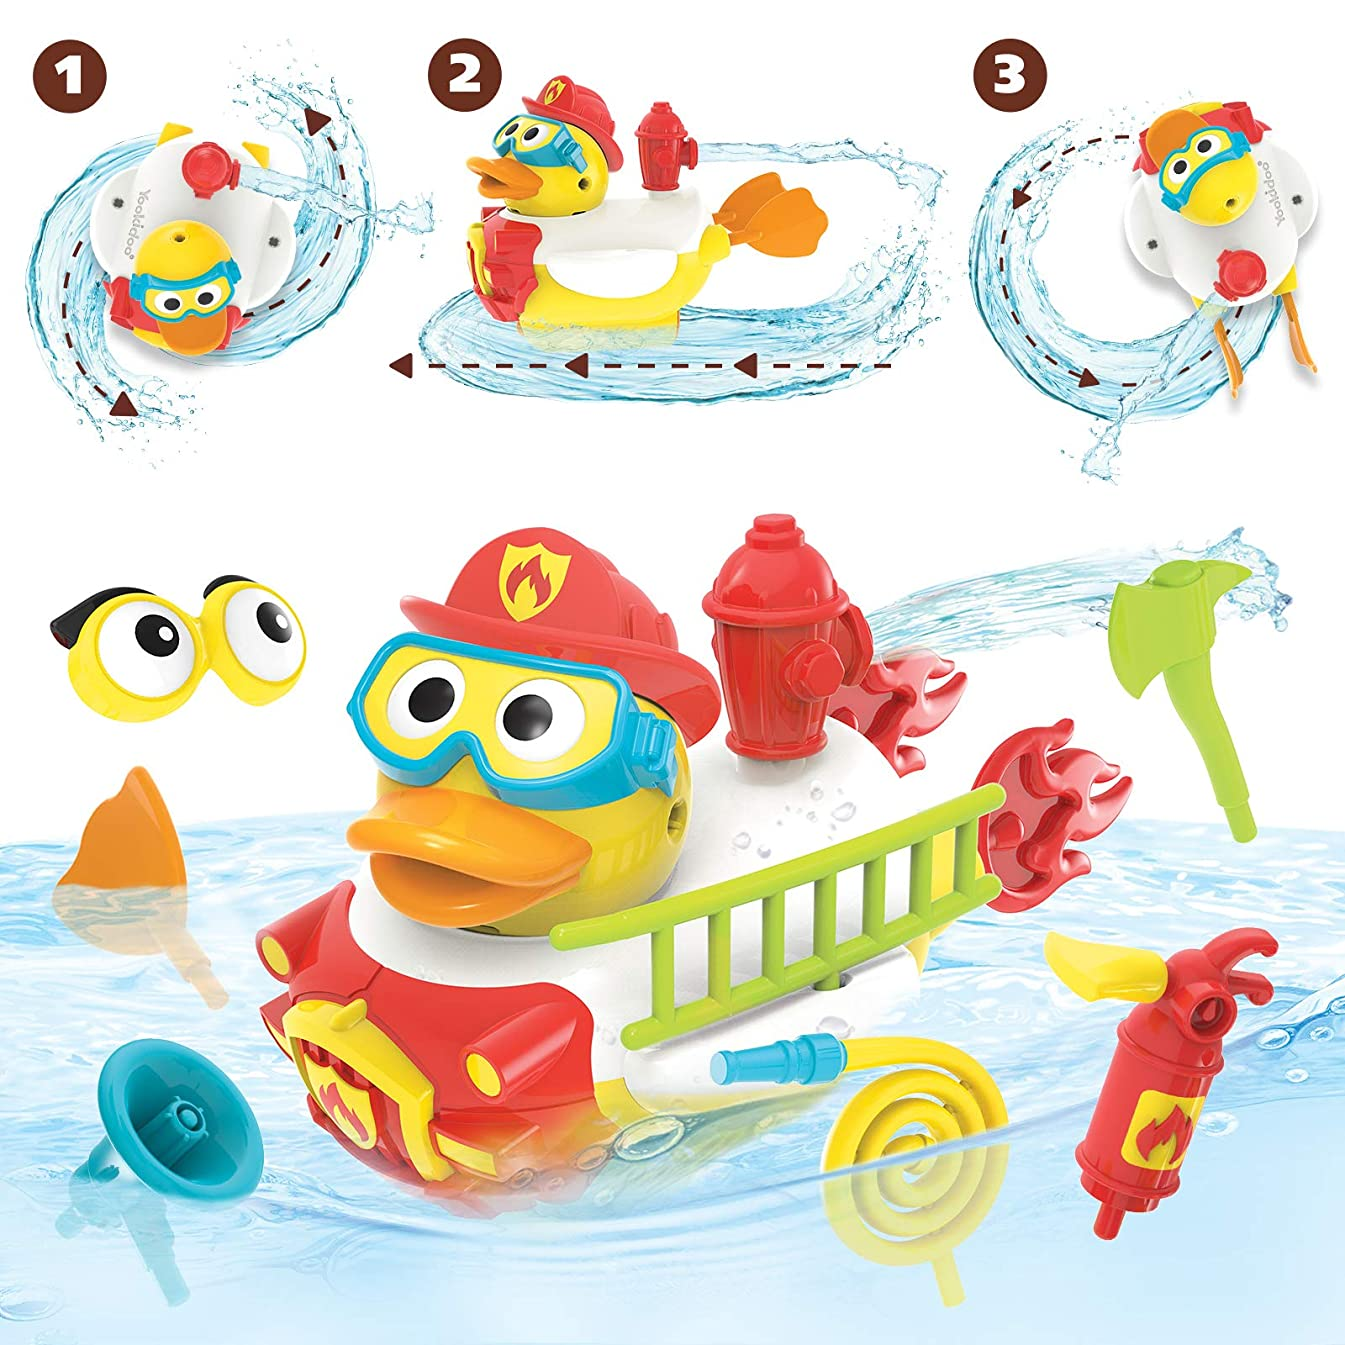 Yookidoo Jet Duck Firefighter Bath Toy with Powered Water Hydrant Shooter - Sensory Development & Bath Time Fun for Kids - Ages 2+